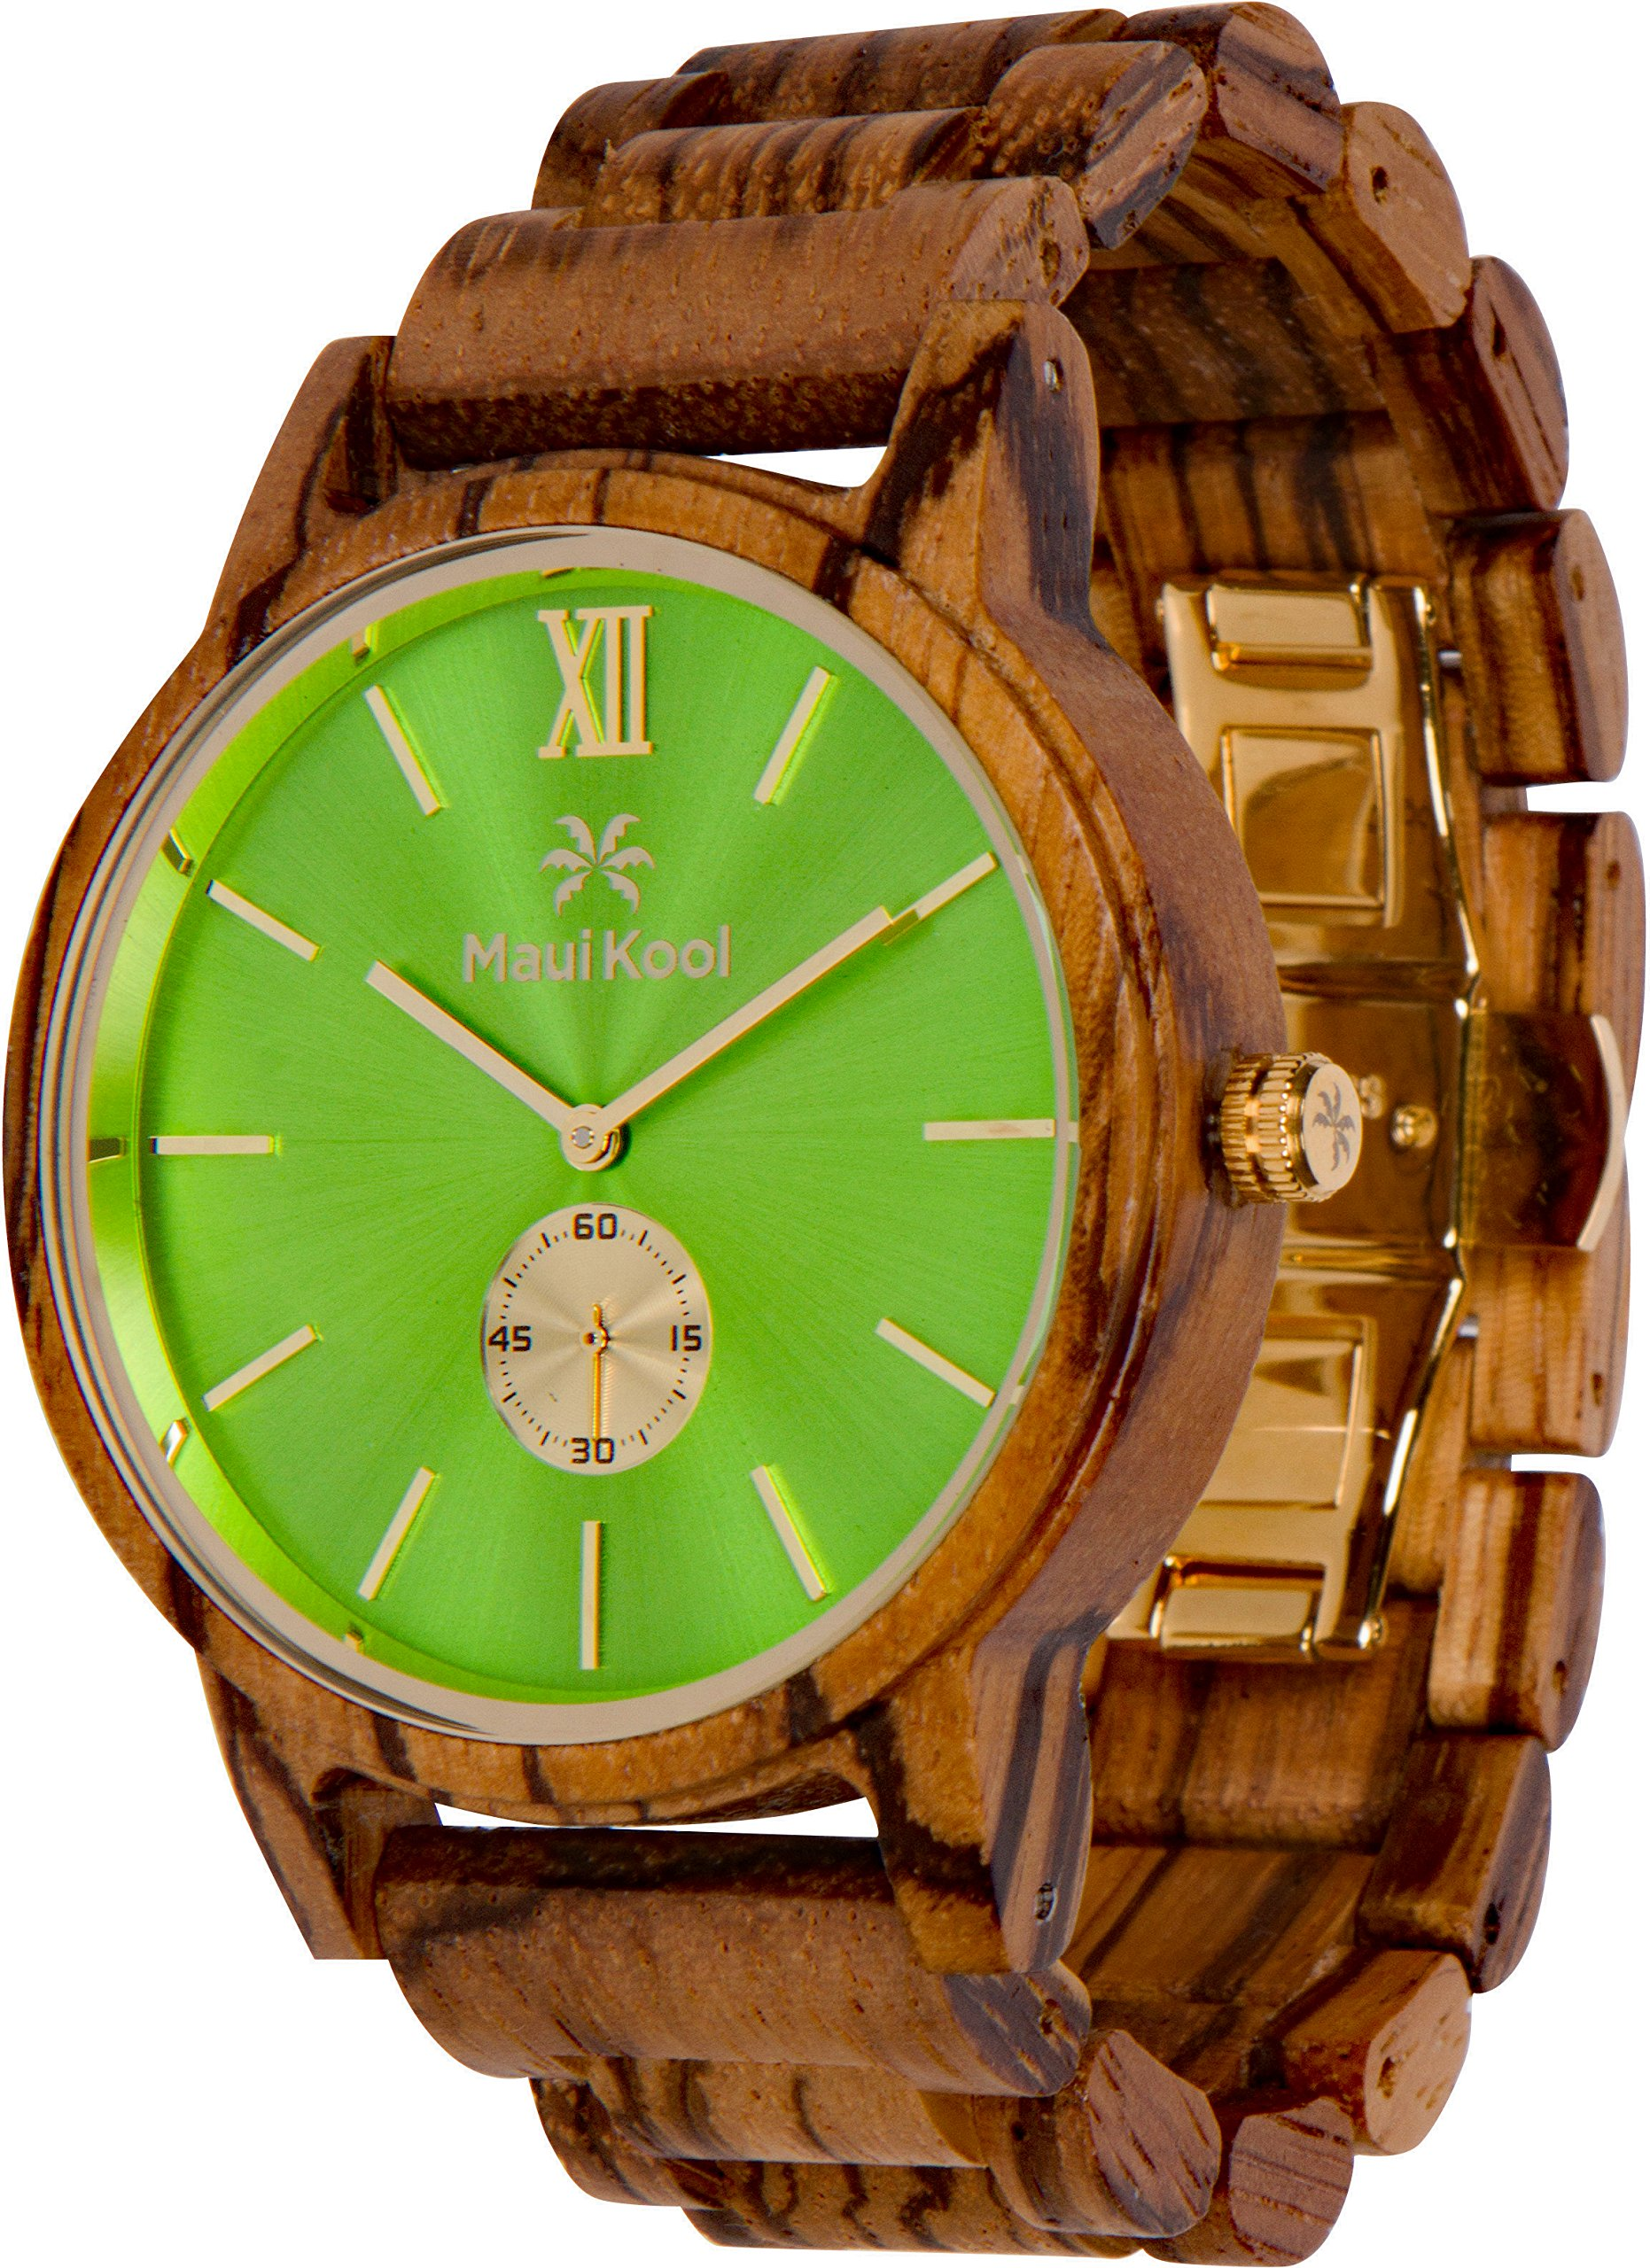 Wooden Watch For Men Maui Kool Kaanapali Collection Analog Large Face Wood Watch Bamboo Gift Box (C6 - Green Face) by Maui Kool (Image #6)